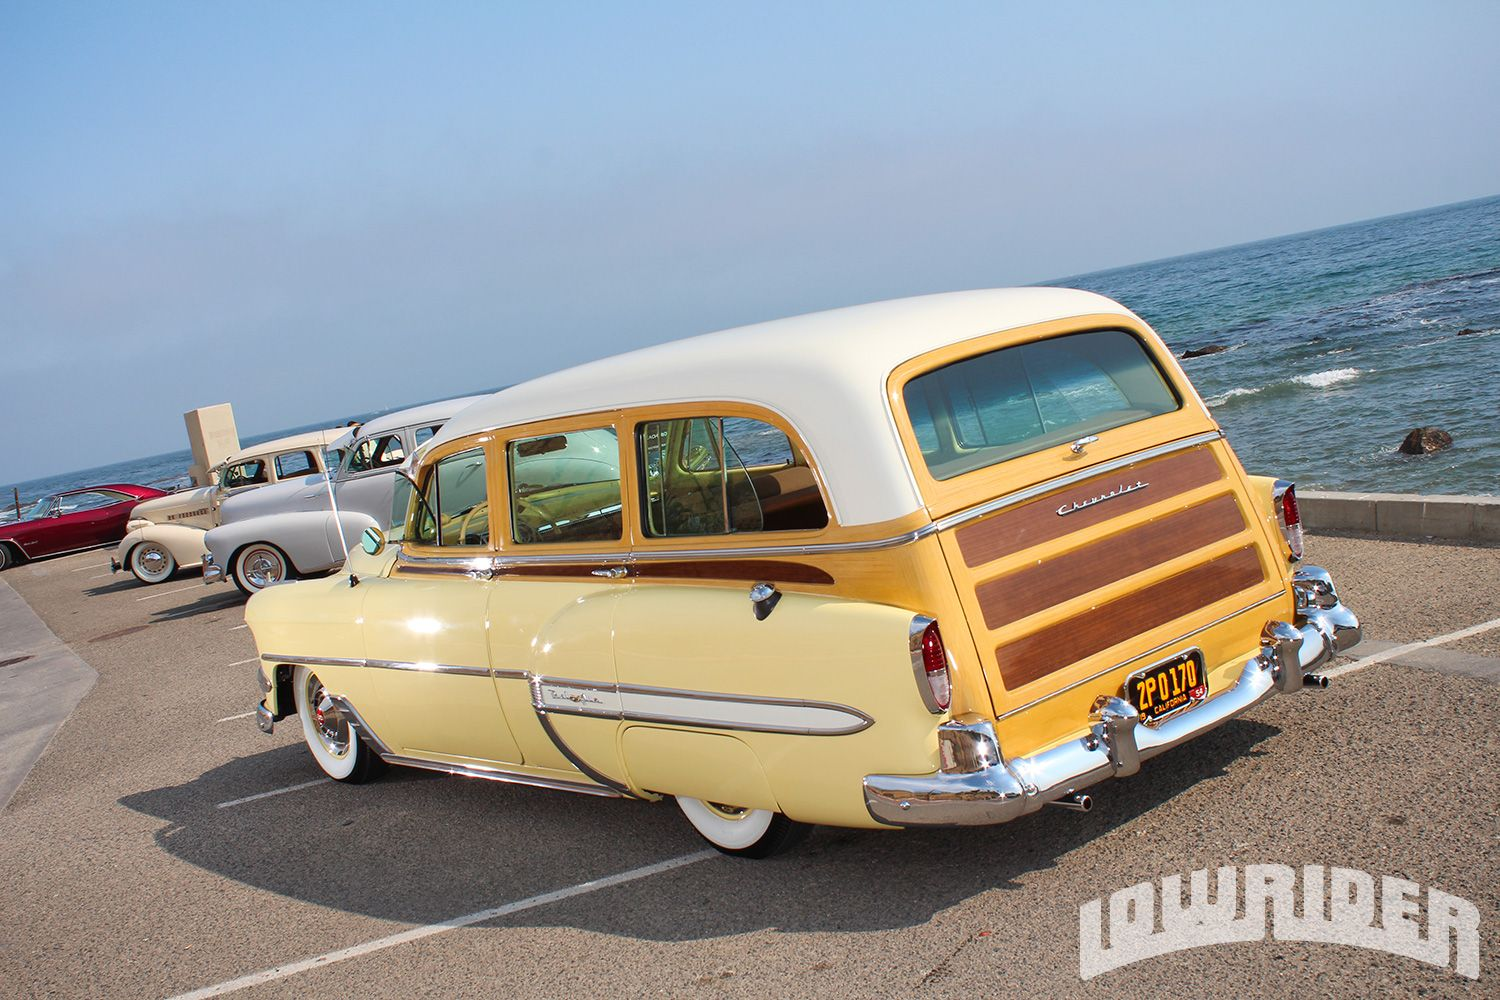 1954 Chevrolet Wagon Woody Wagon Station Wagon Cars Classic Cars Trucks